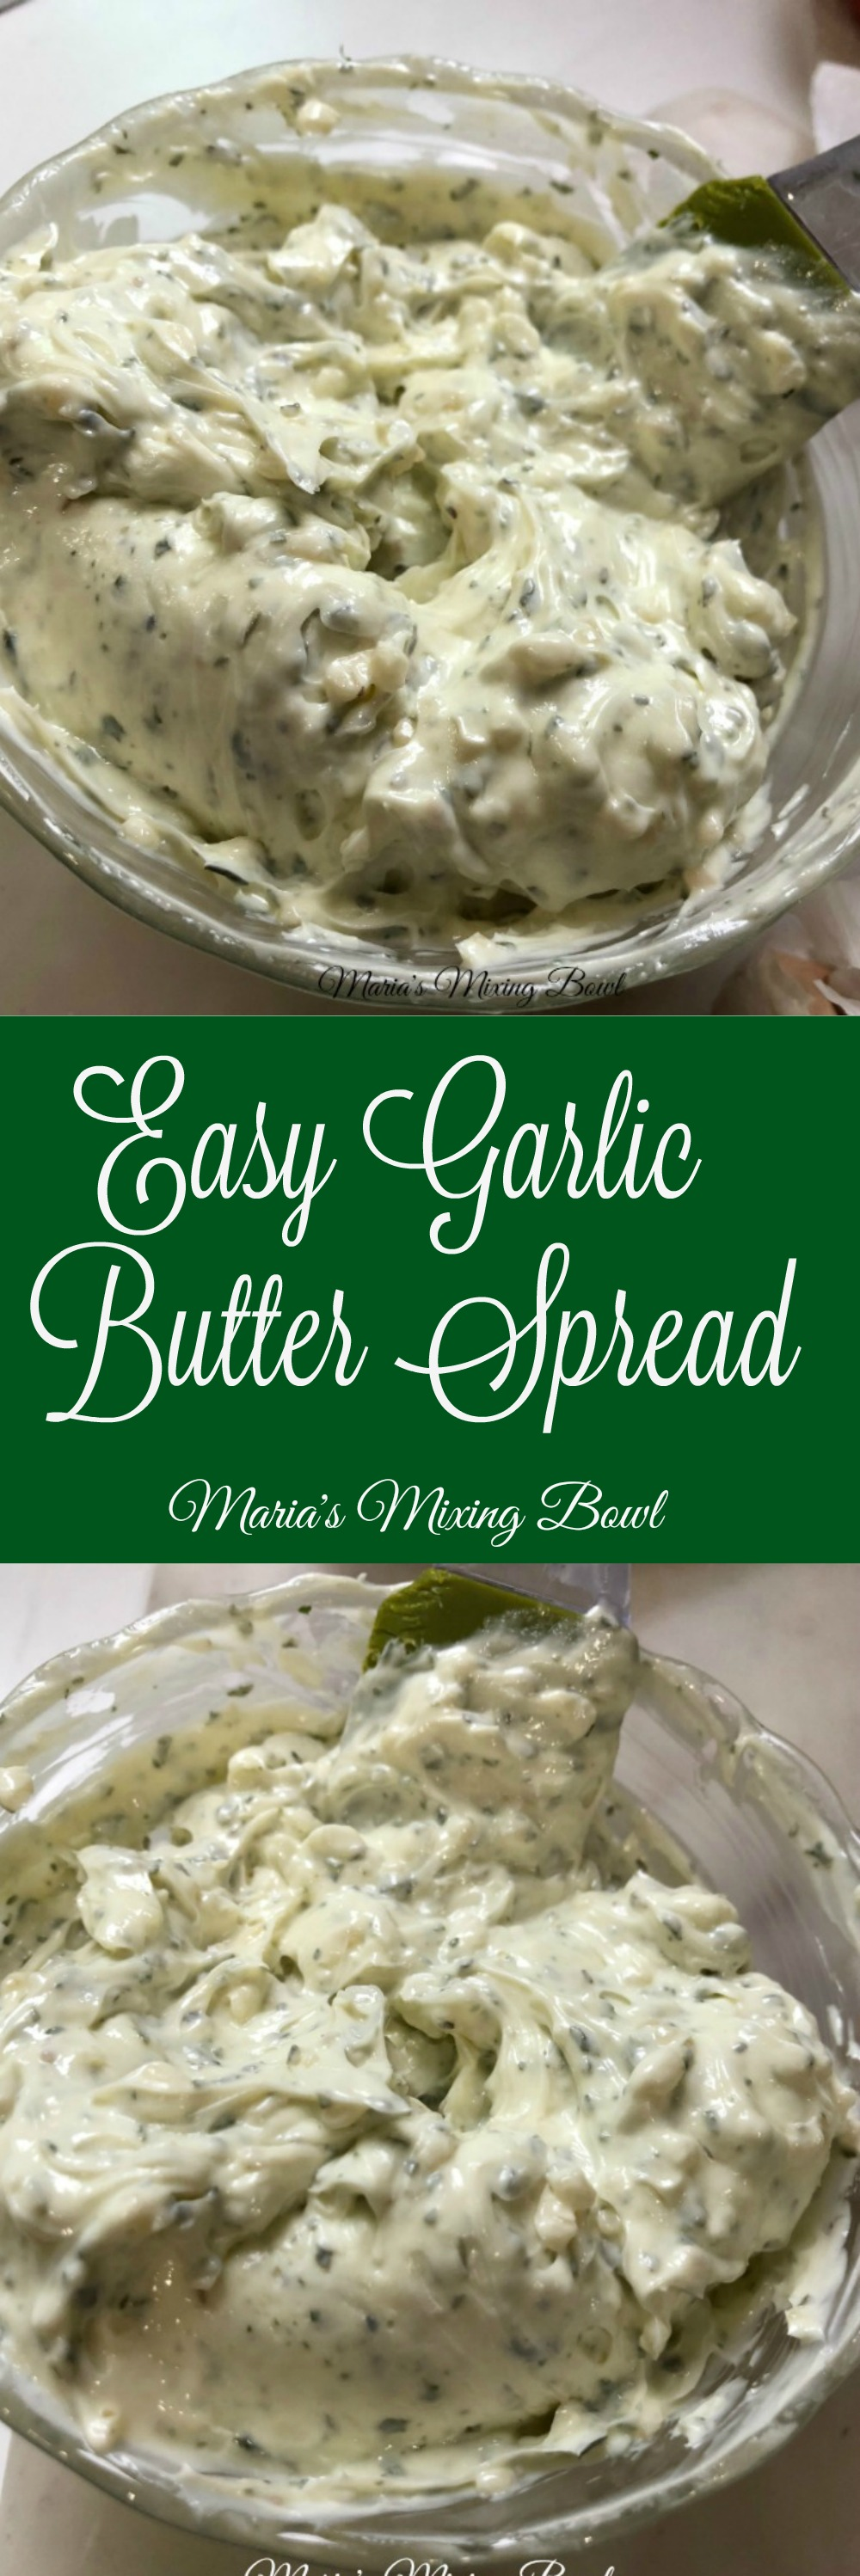 Easy Garlic Butter Spread Recipe - Easily transform butter into garlic butter with this super easy recipe. So much better than store bought!